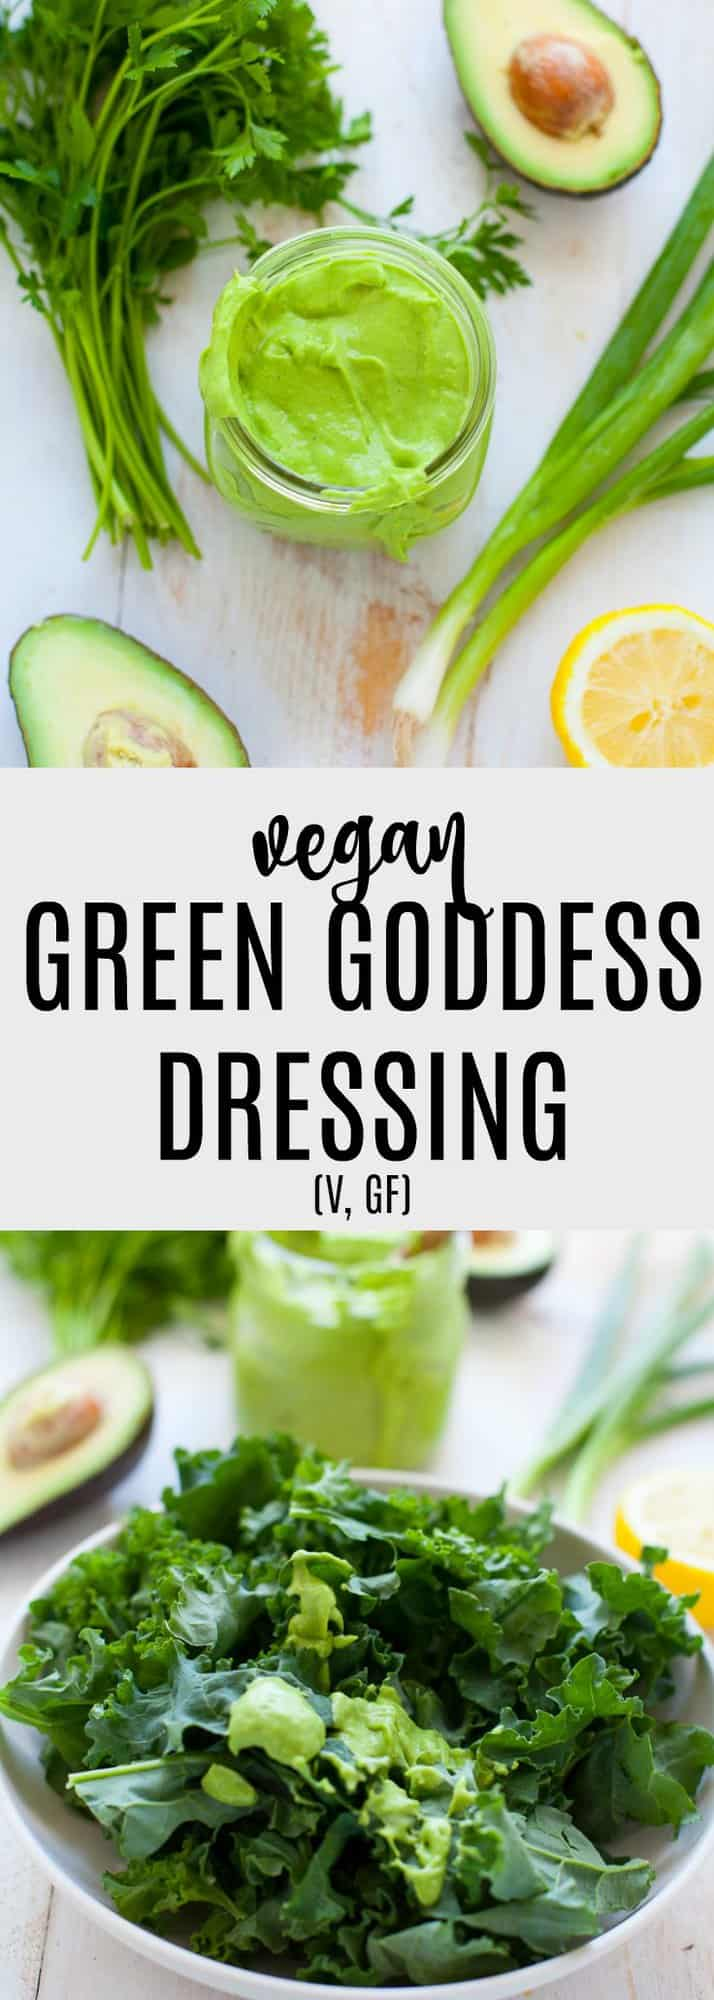 Vegan Green Goddess Dressing that's packed with greens, apple cider vinegar, EVOO and is completely dairy-free. Perfect over a kale salad, a sweet potato, or even used as a dip.